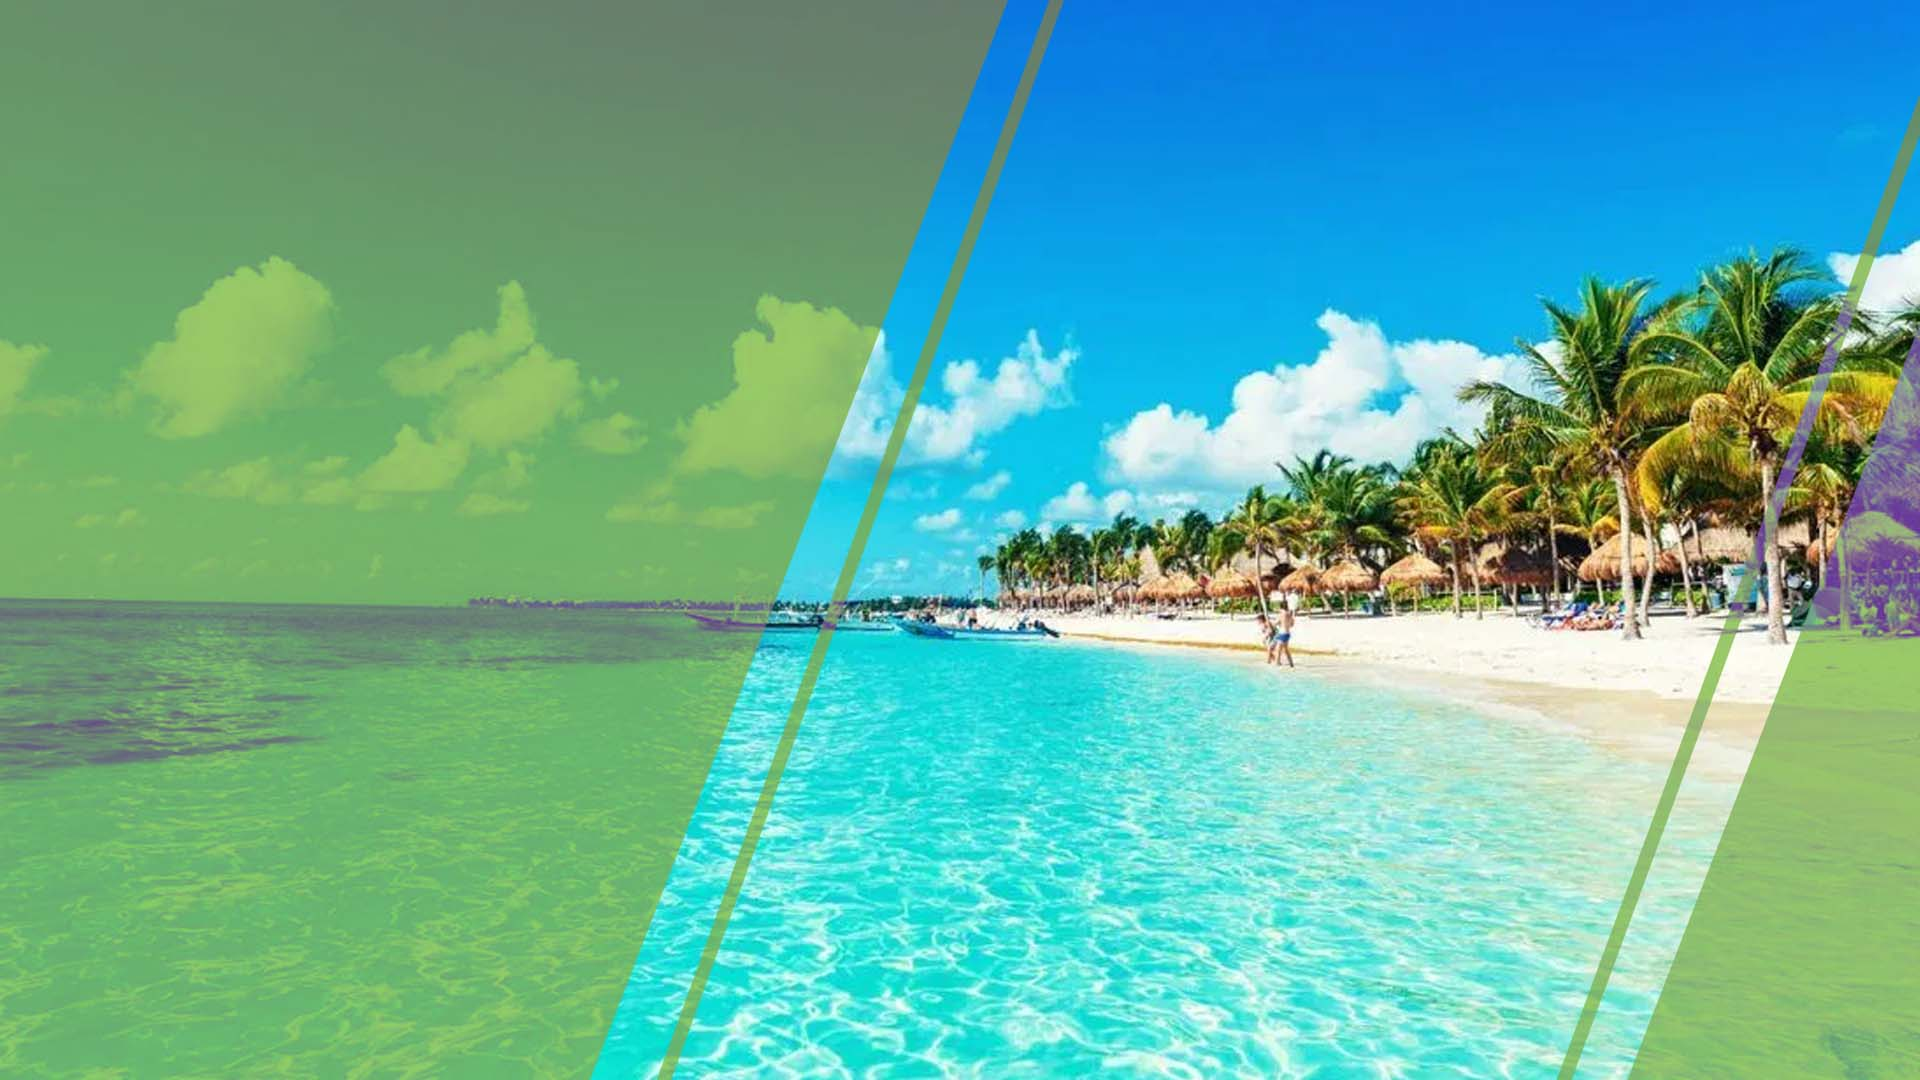 5 Reasons to invest in the Riviera Maya